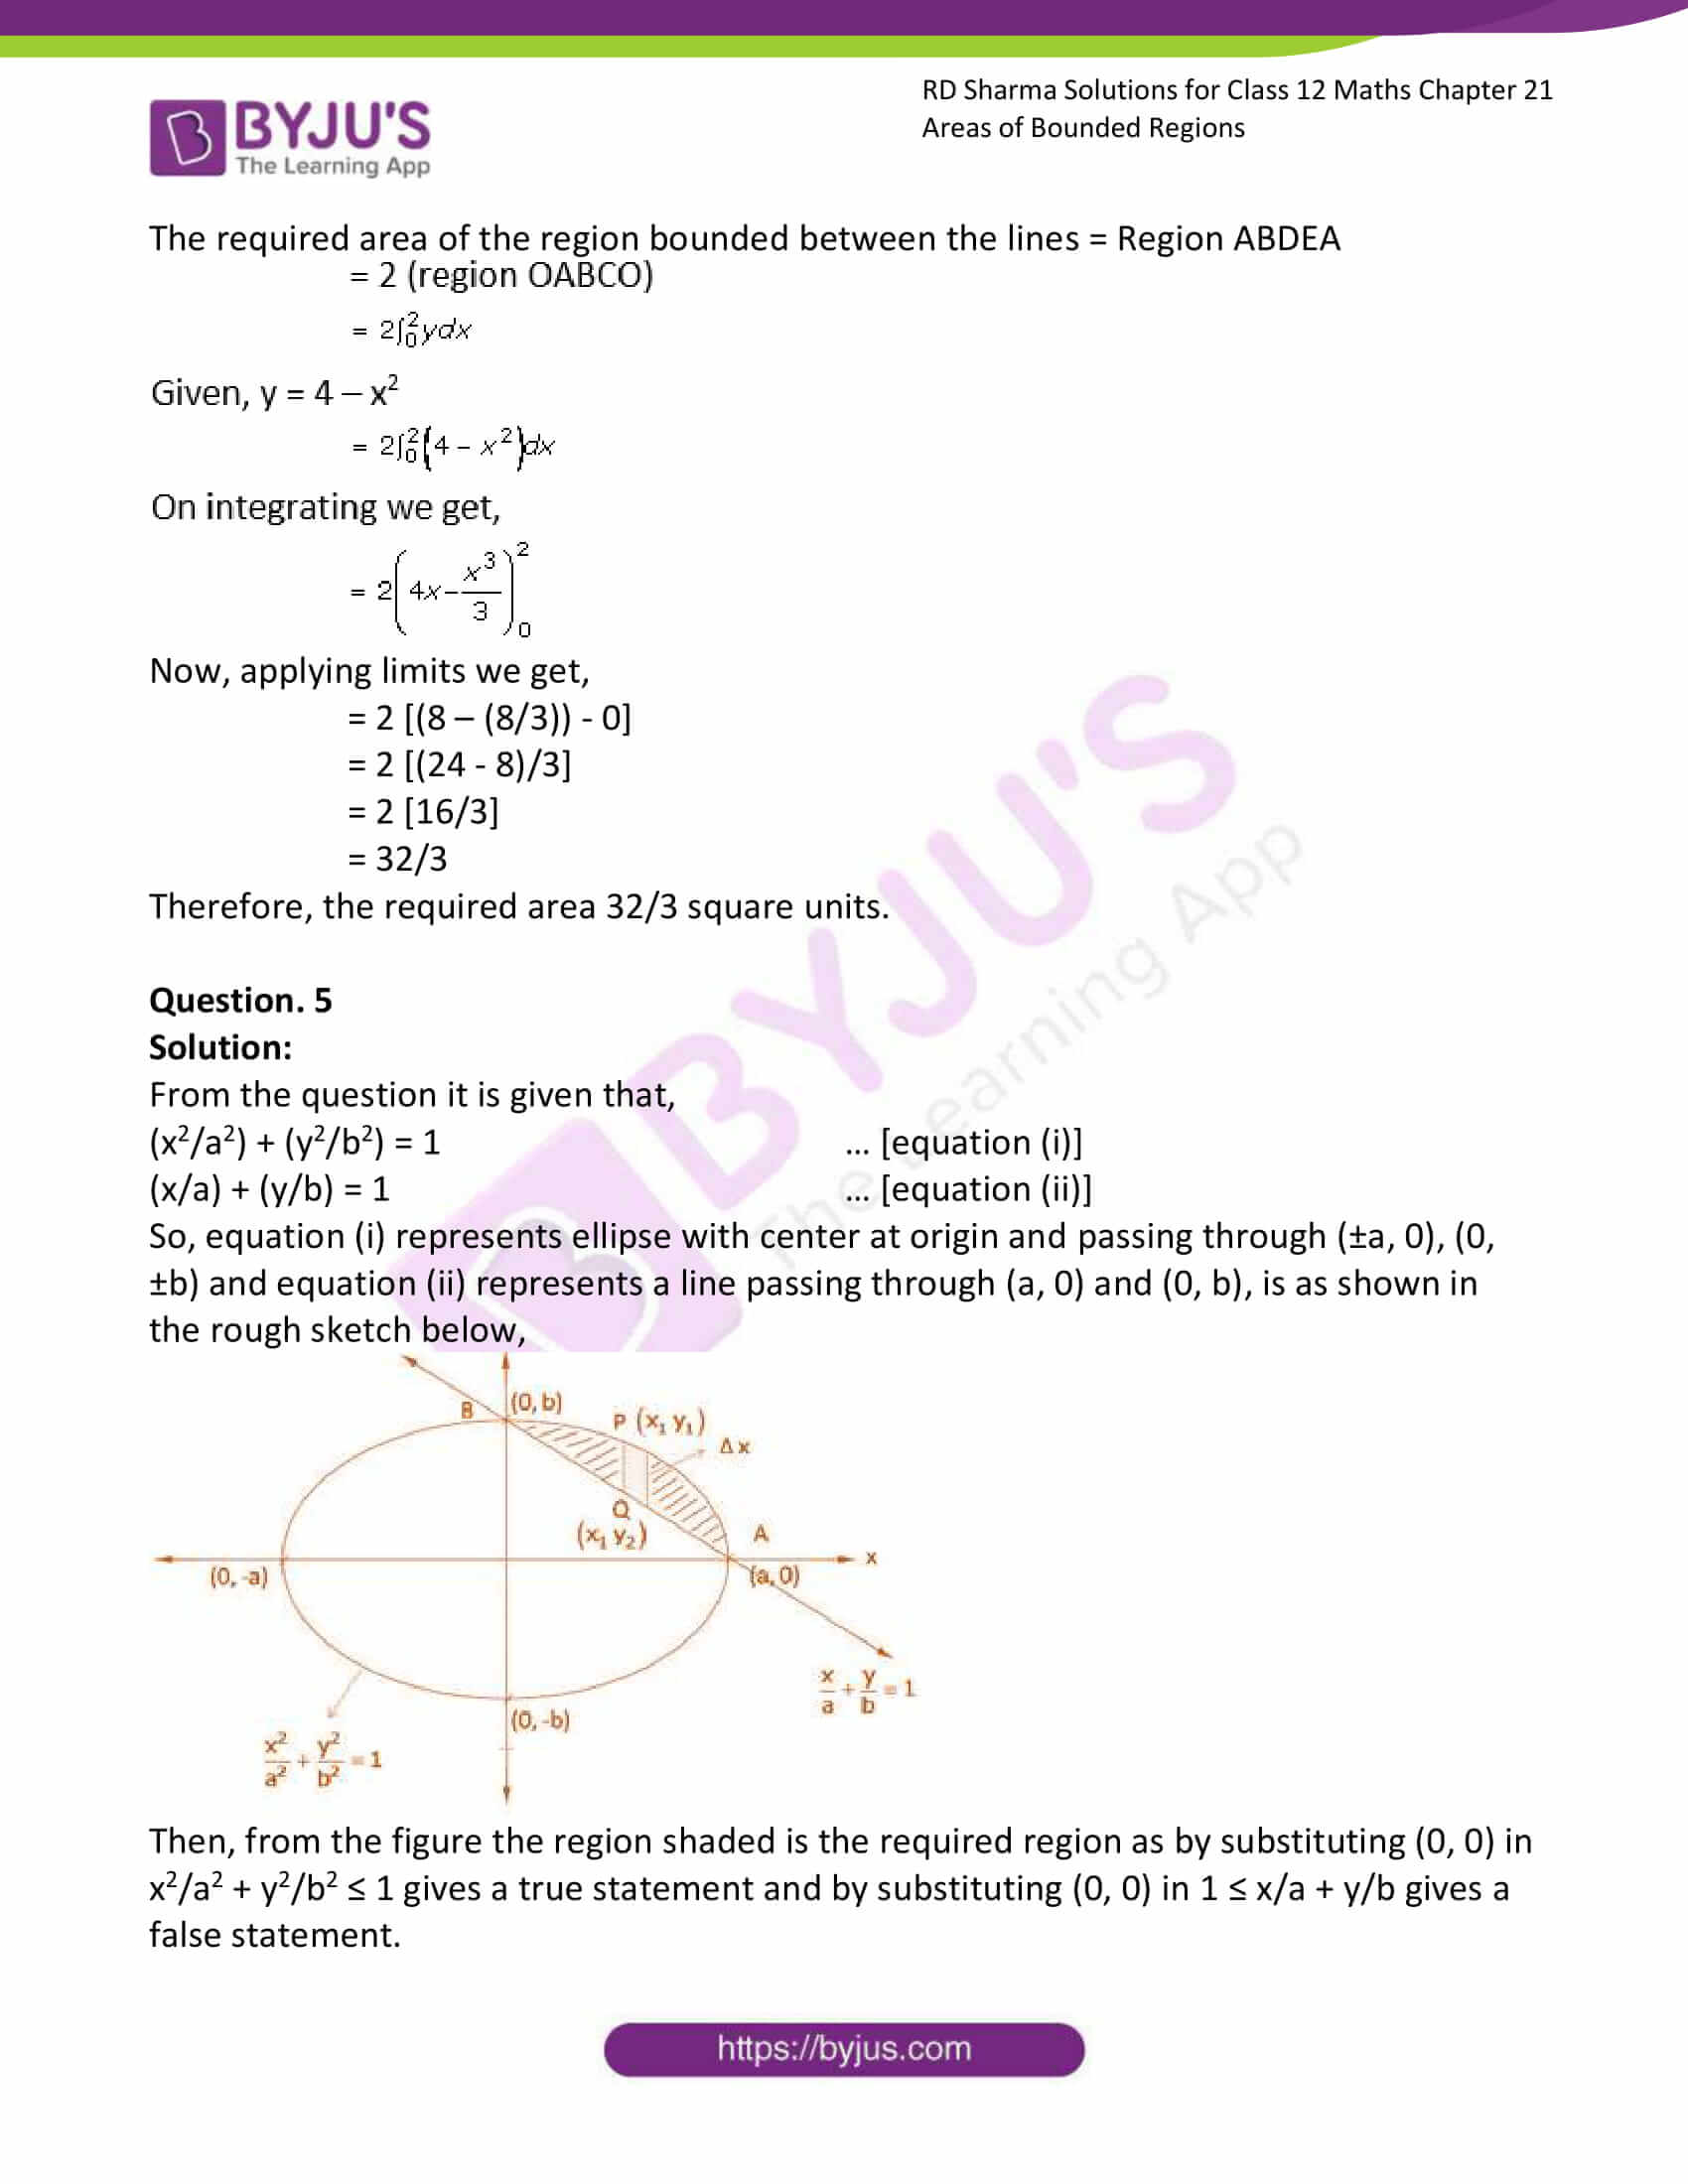 rd sharma solutions for class 12 maths chapter 21 ex 3 5